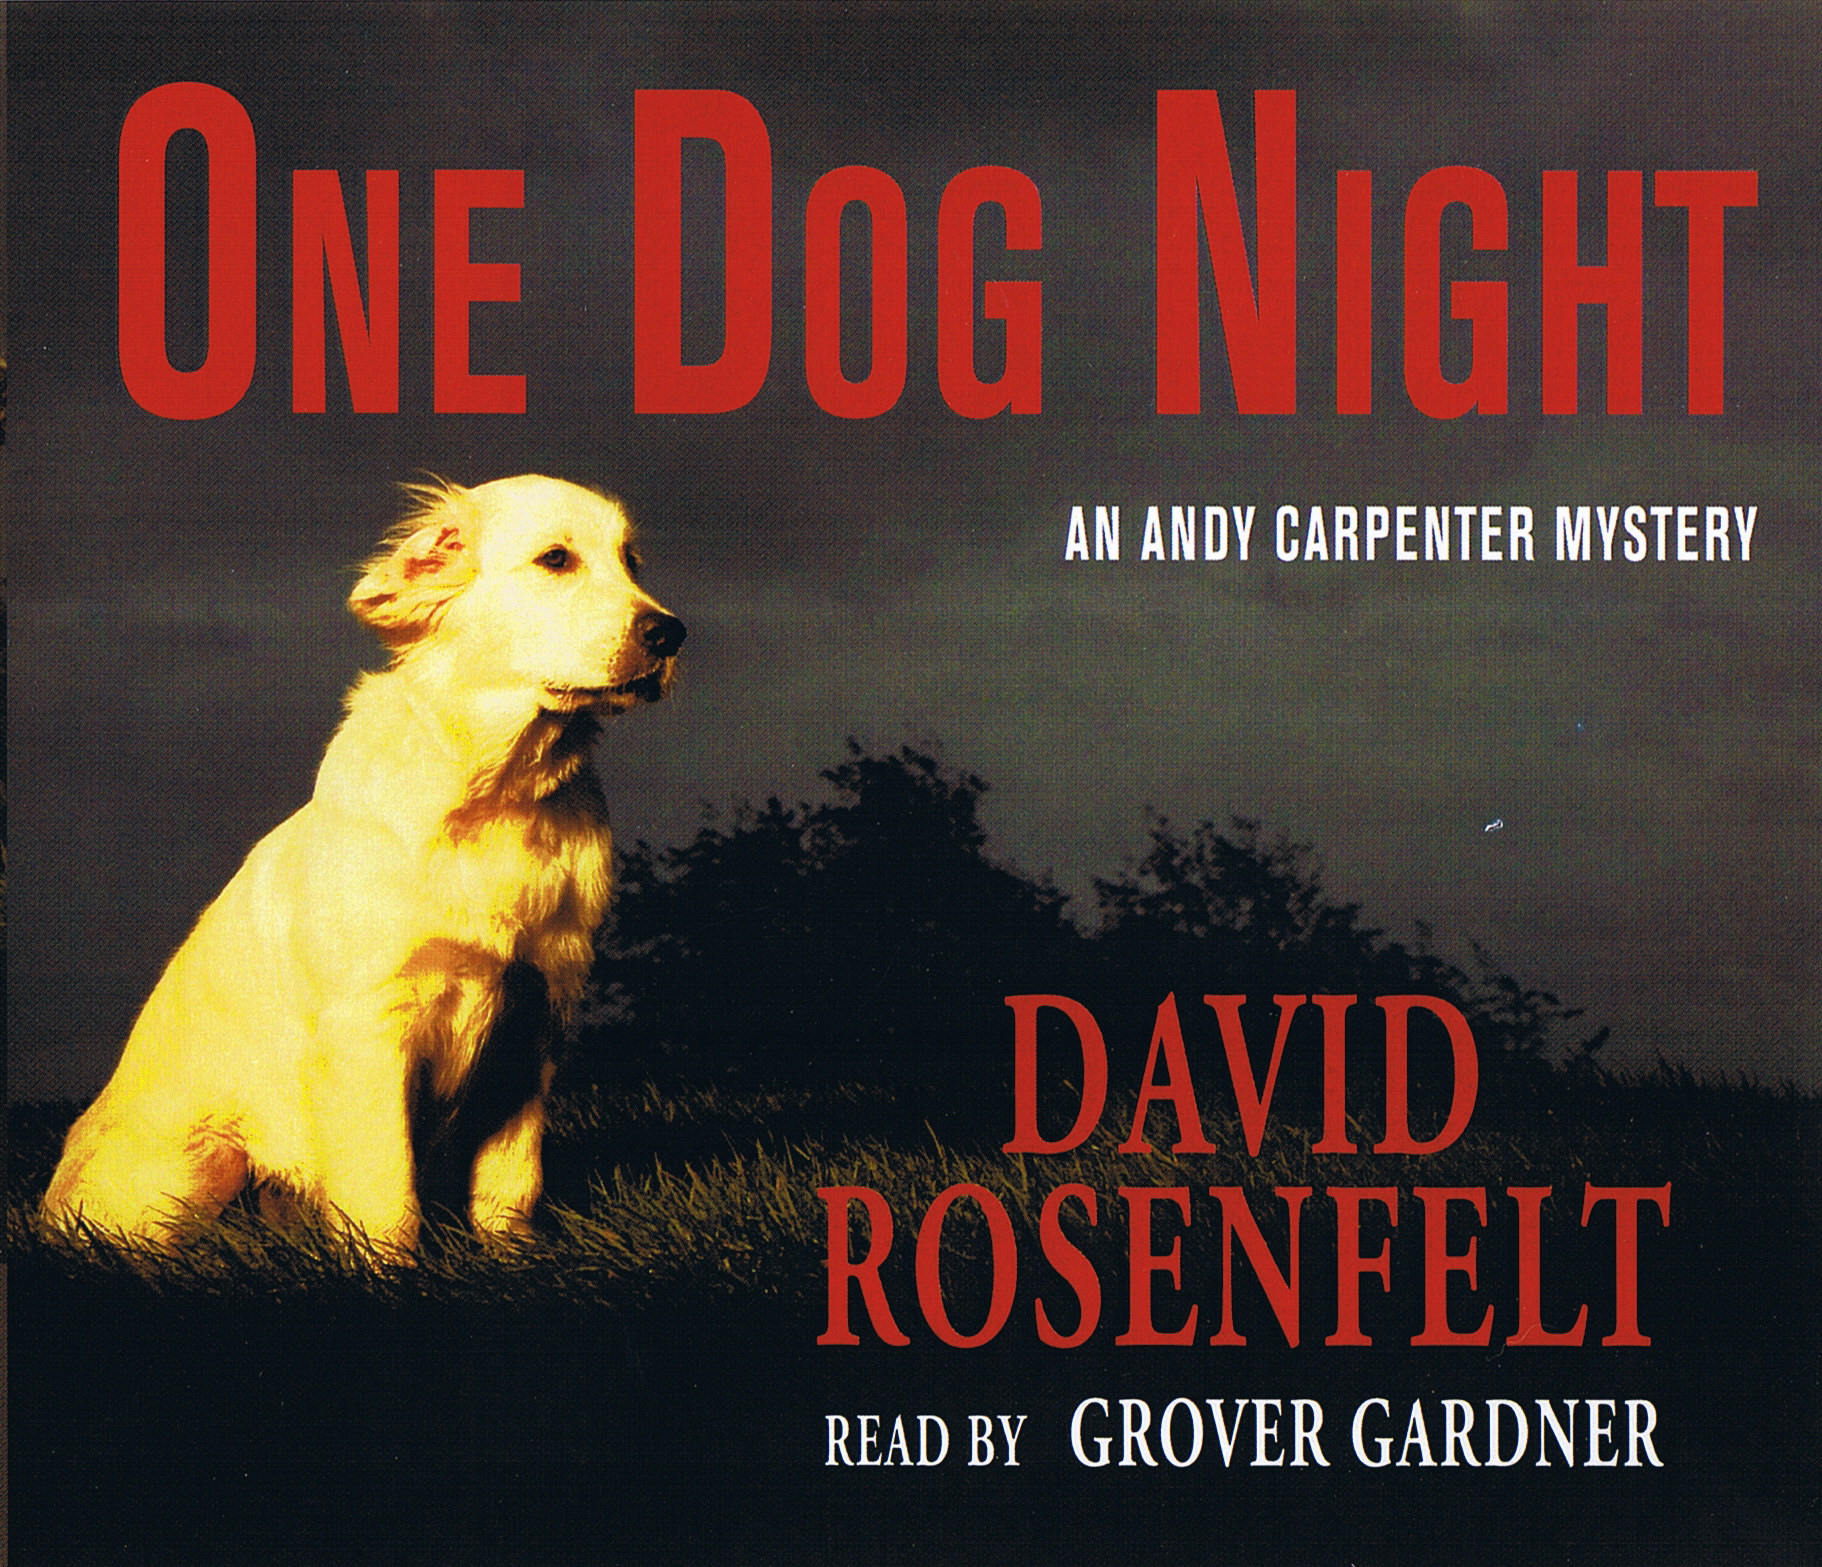 One Dog Night [DD]